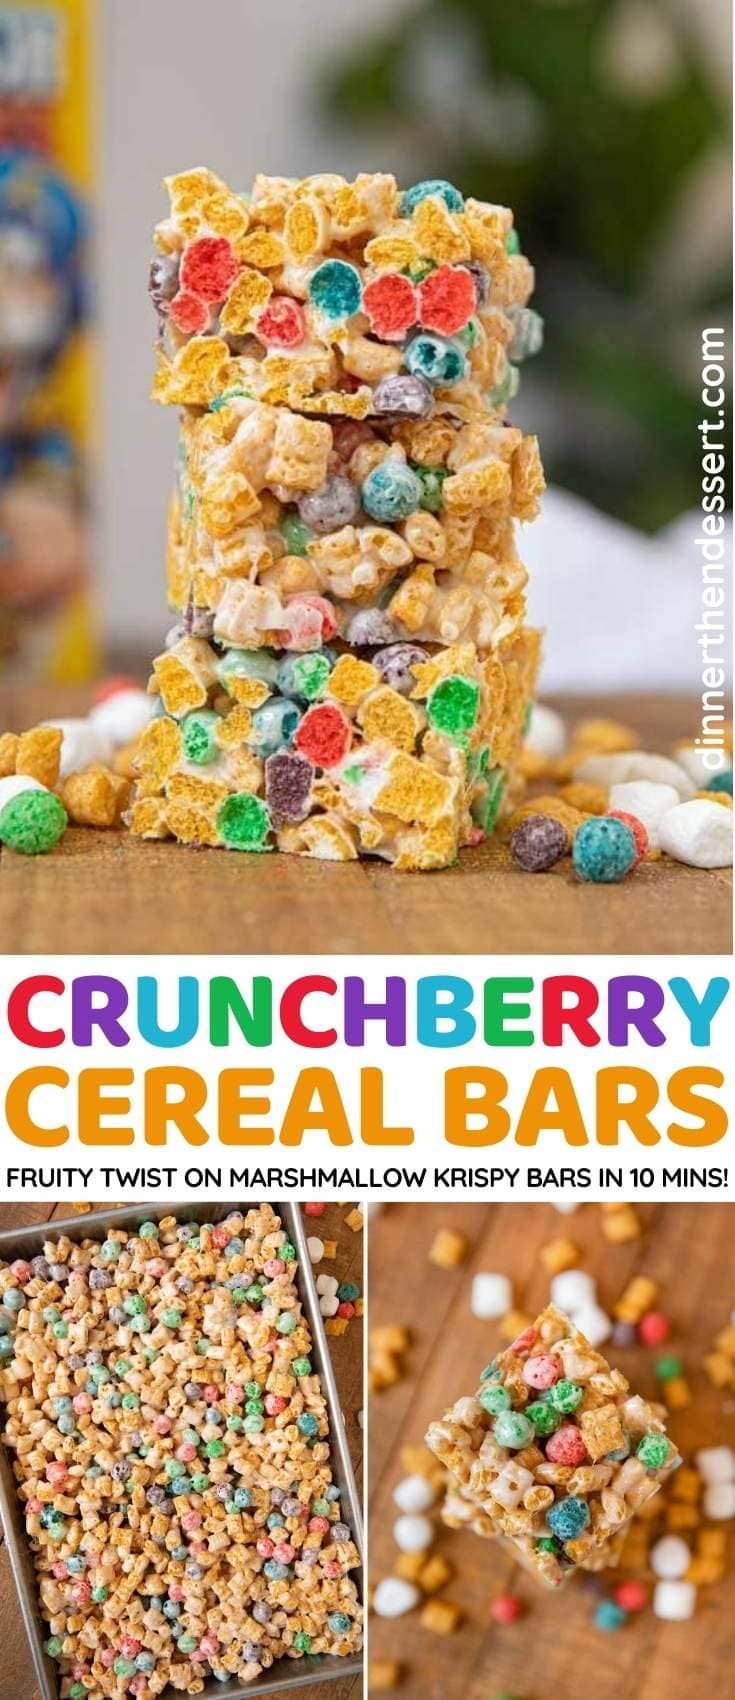 Crunchberry Cereal Bars collage